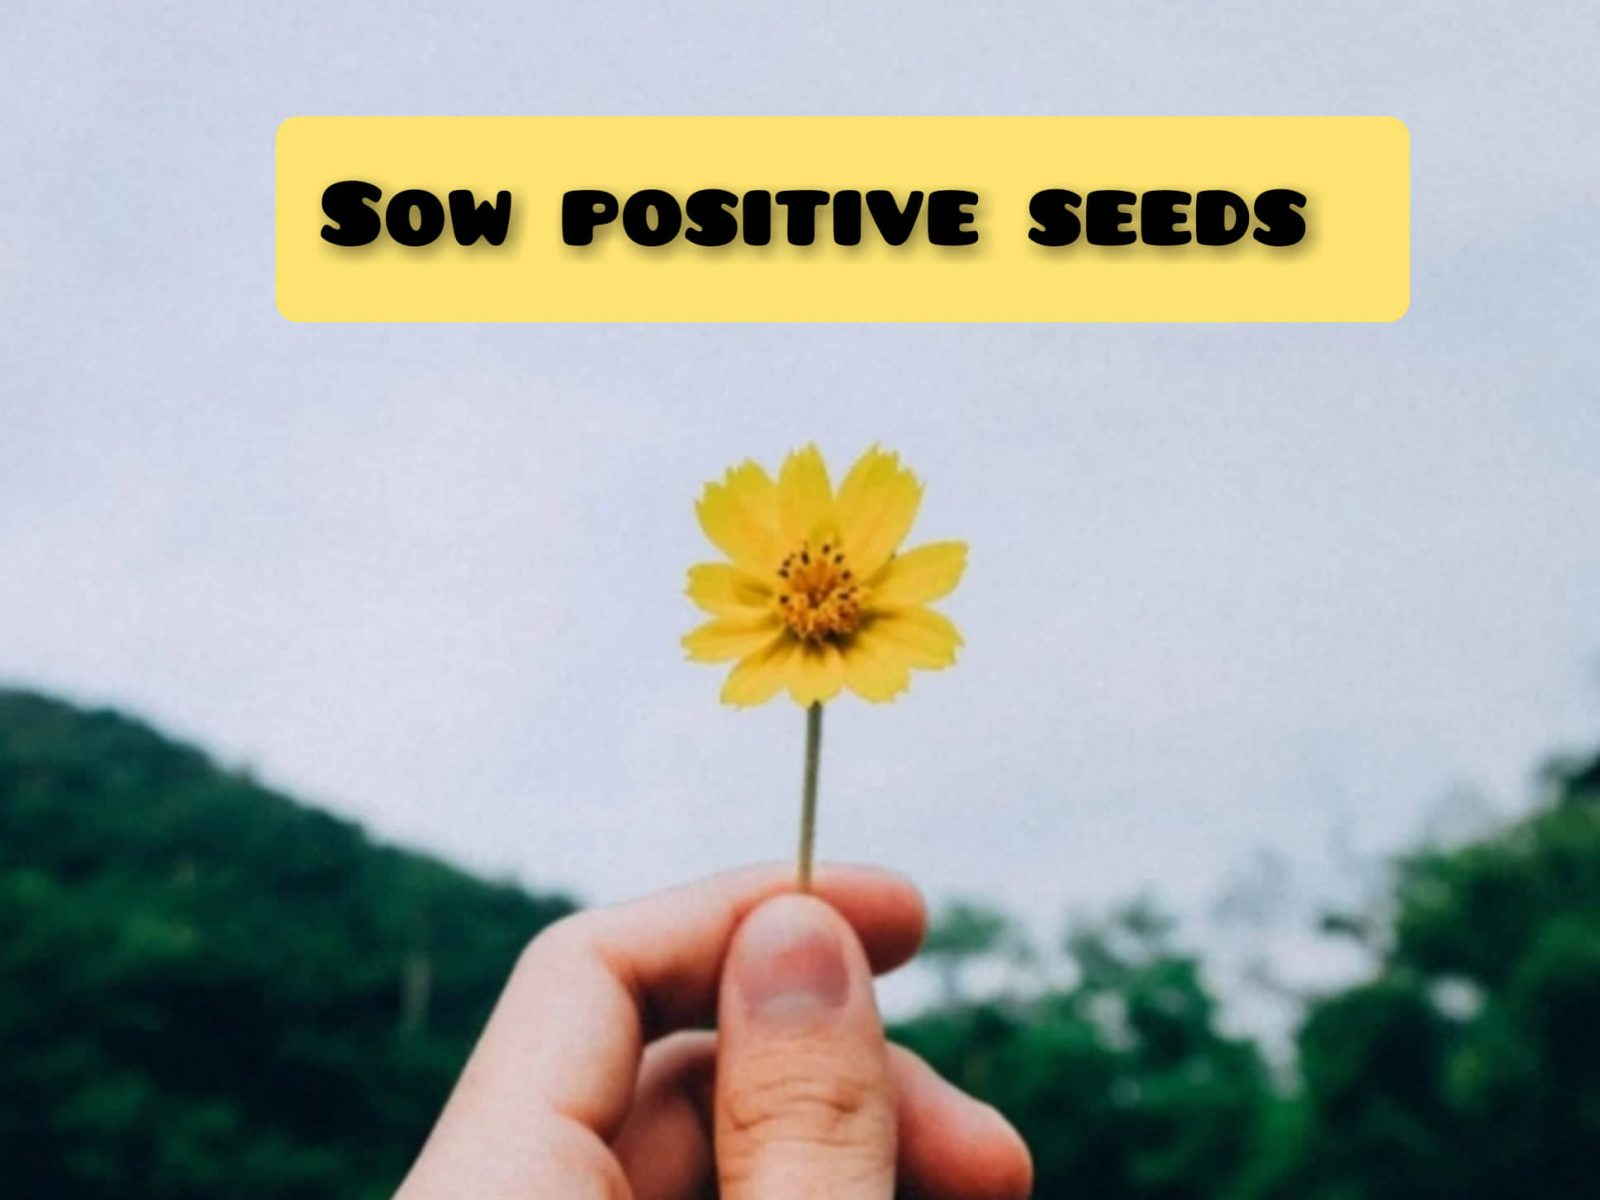 Sow positive seeds to harvest positivity in the future.